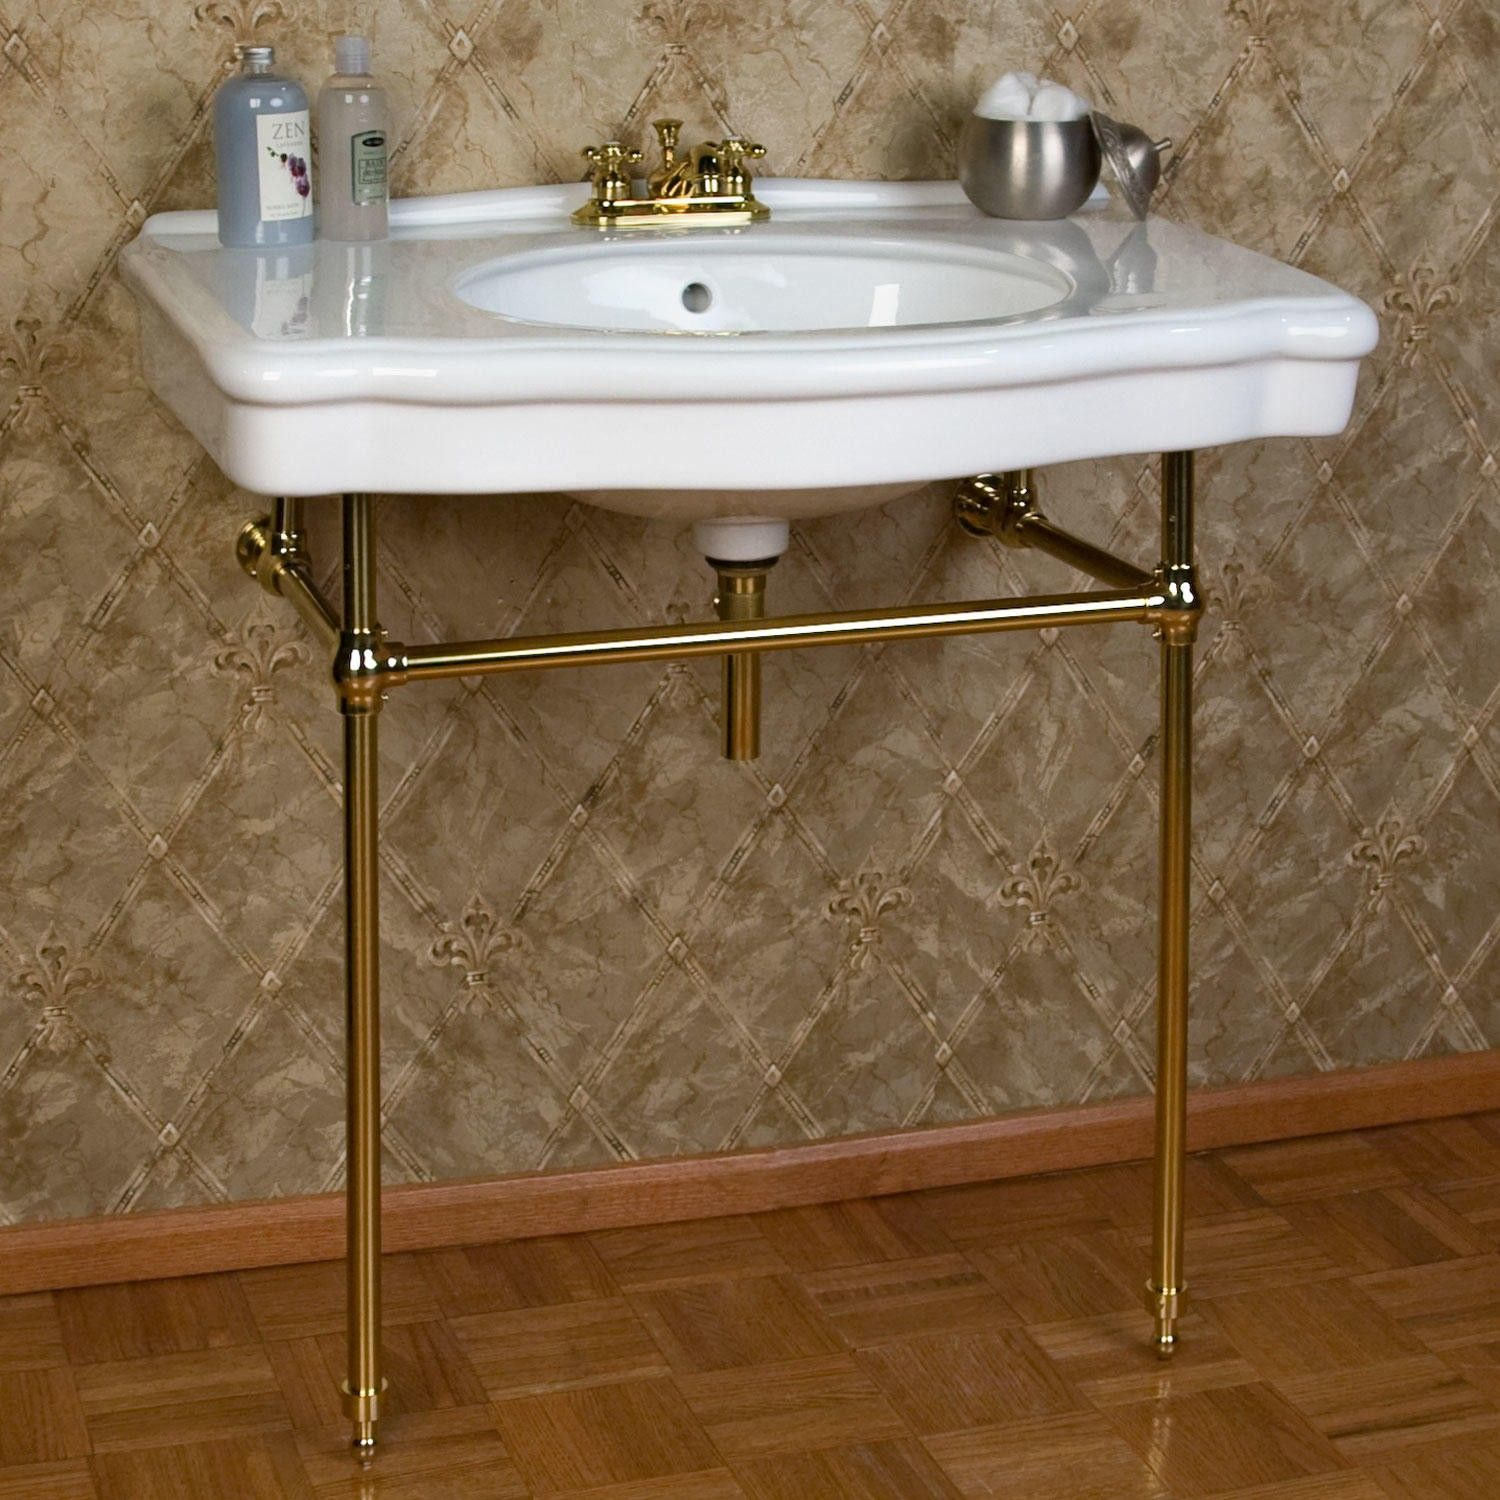 Console sink with chrome legs - Pennington Console Sink With Brass Stand Signaturehardware Com Powder Room Half Bath